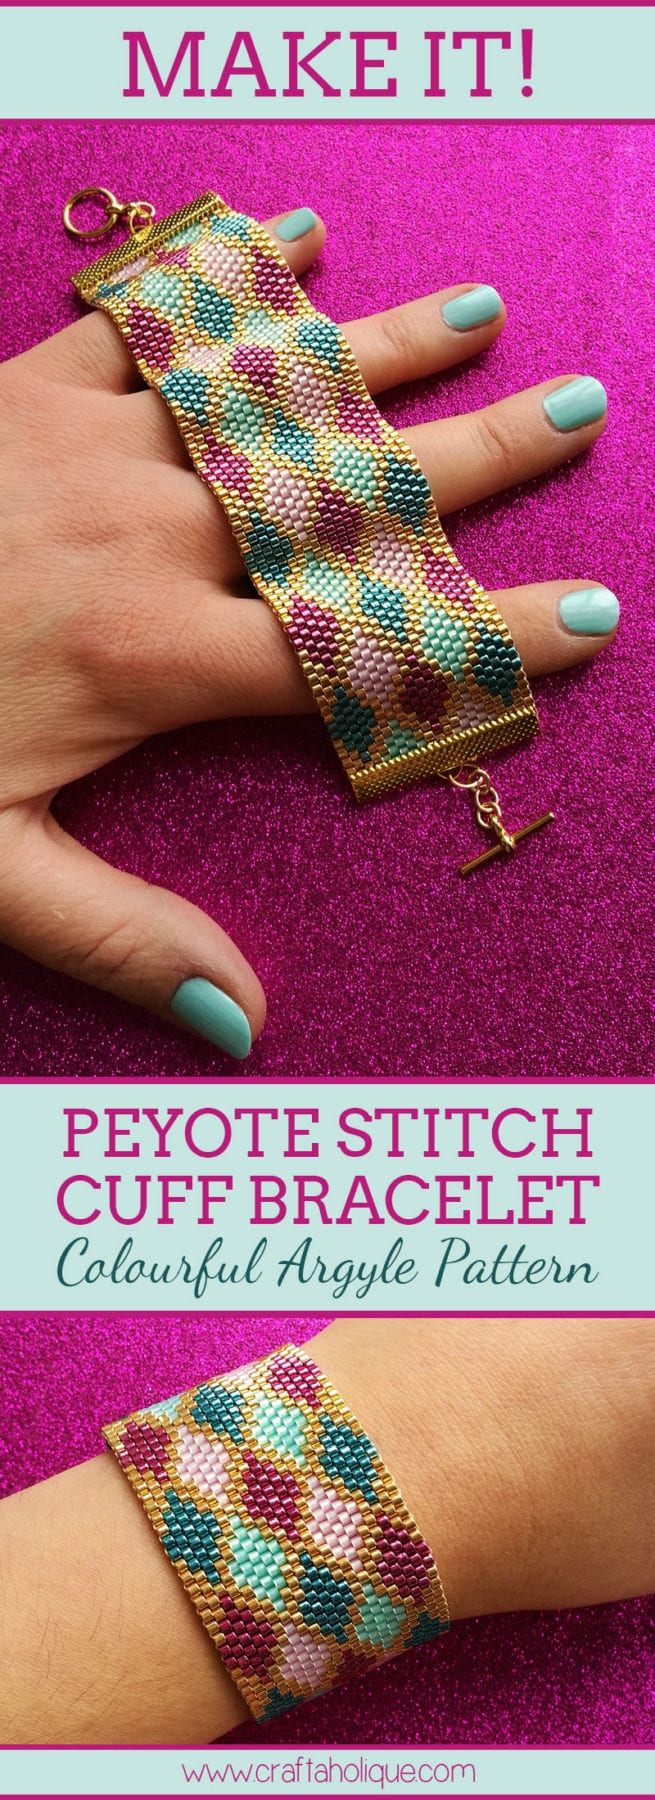 Peyote Cuff Bracelet Pattern - Miyuki Delica Beading Pattern for Colourful Argyle Bracelet